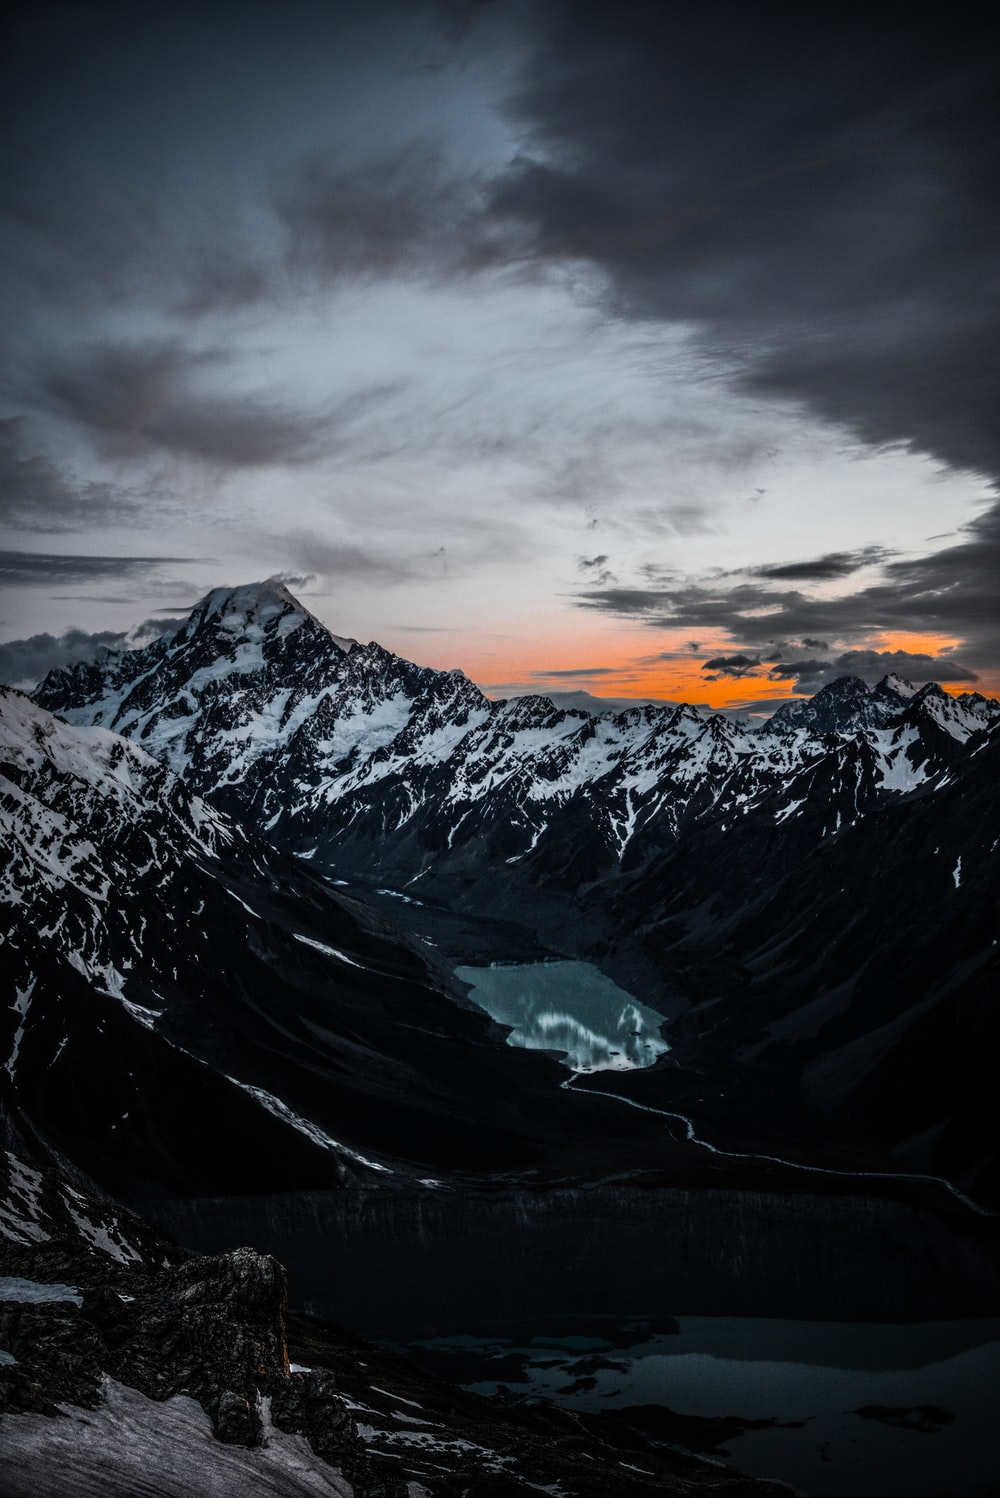 snow-covered mountain under sunset